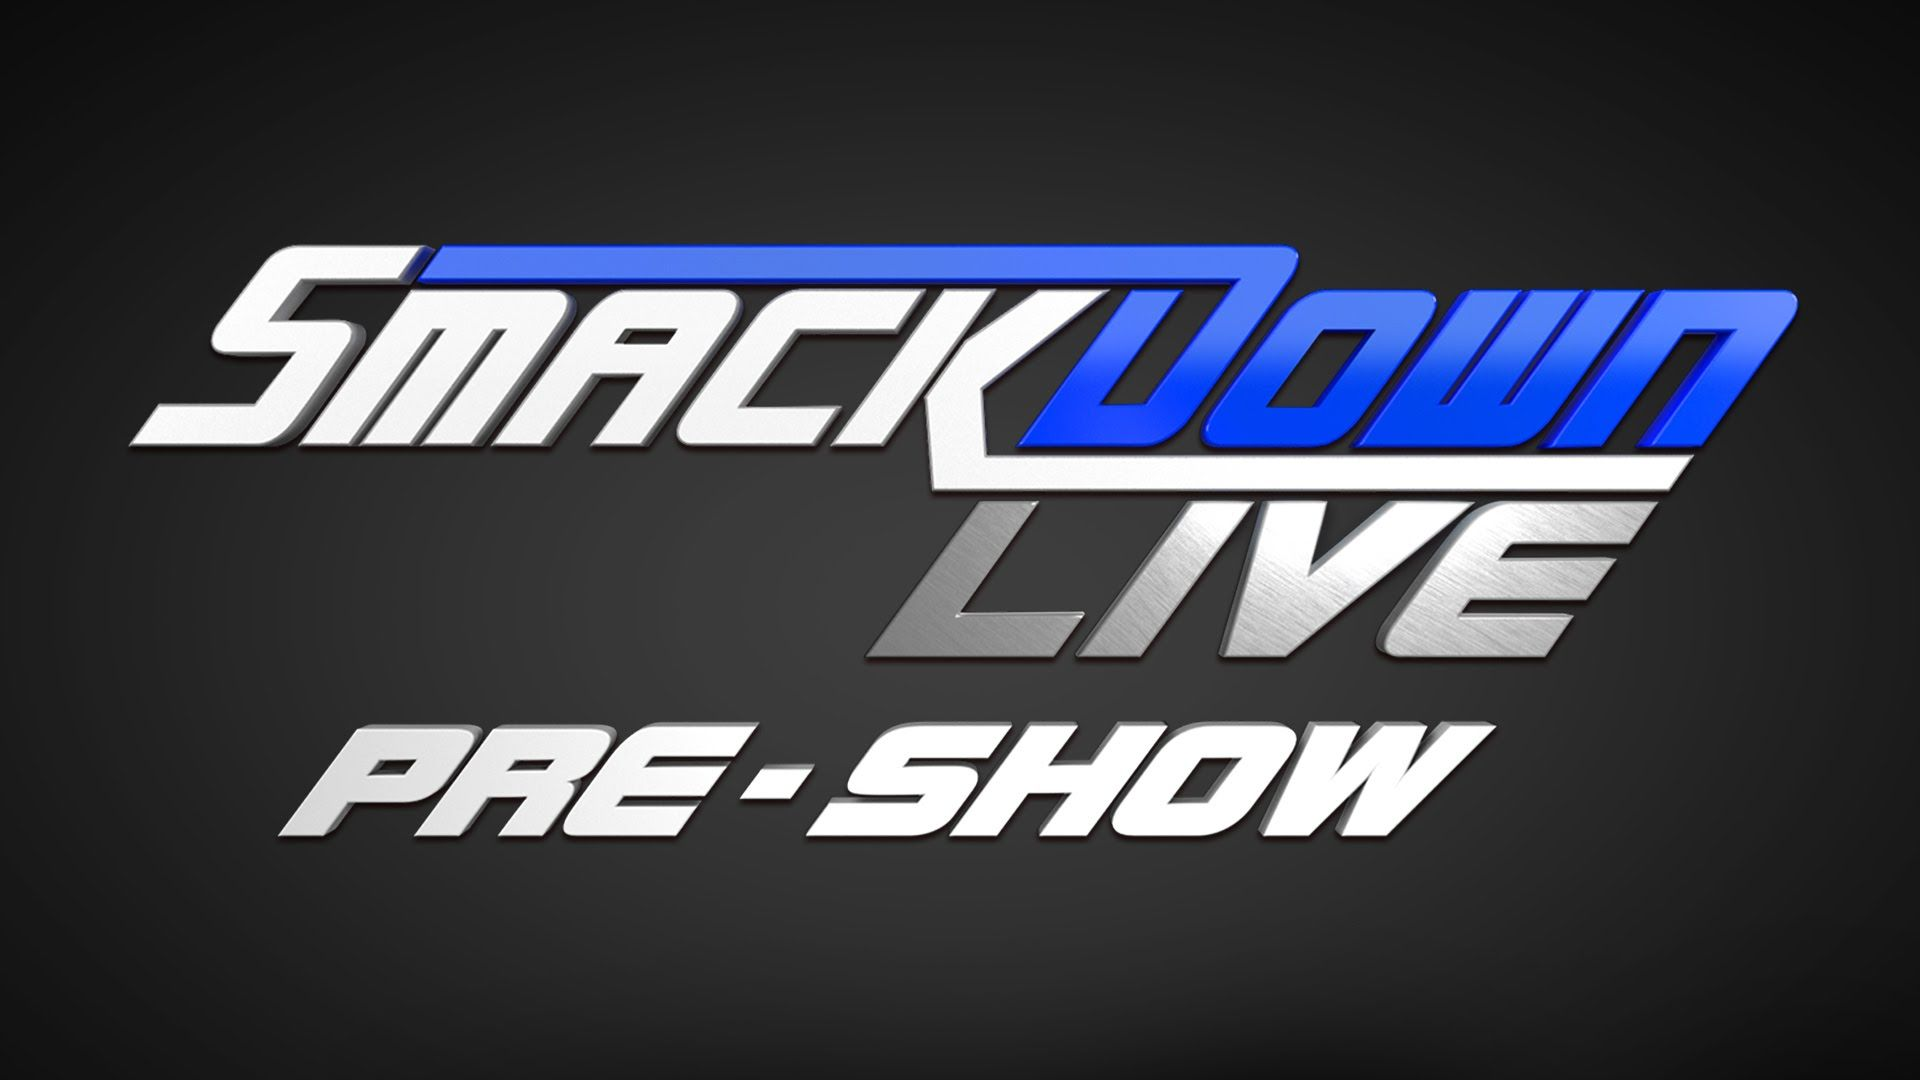 Don't miss the WWE SmackDown Live Pre-Show, RIGHT HERE at 7:30c/6:30c!